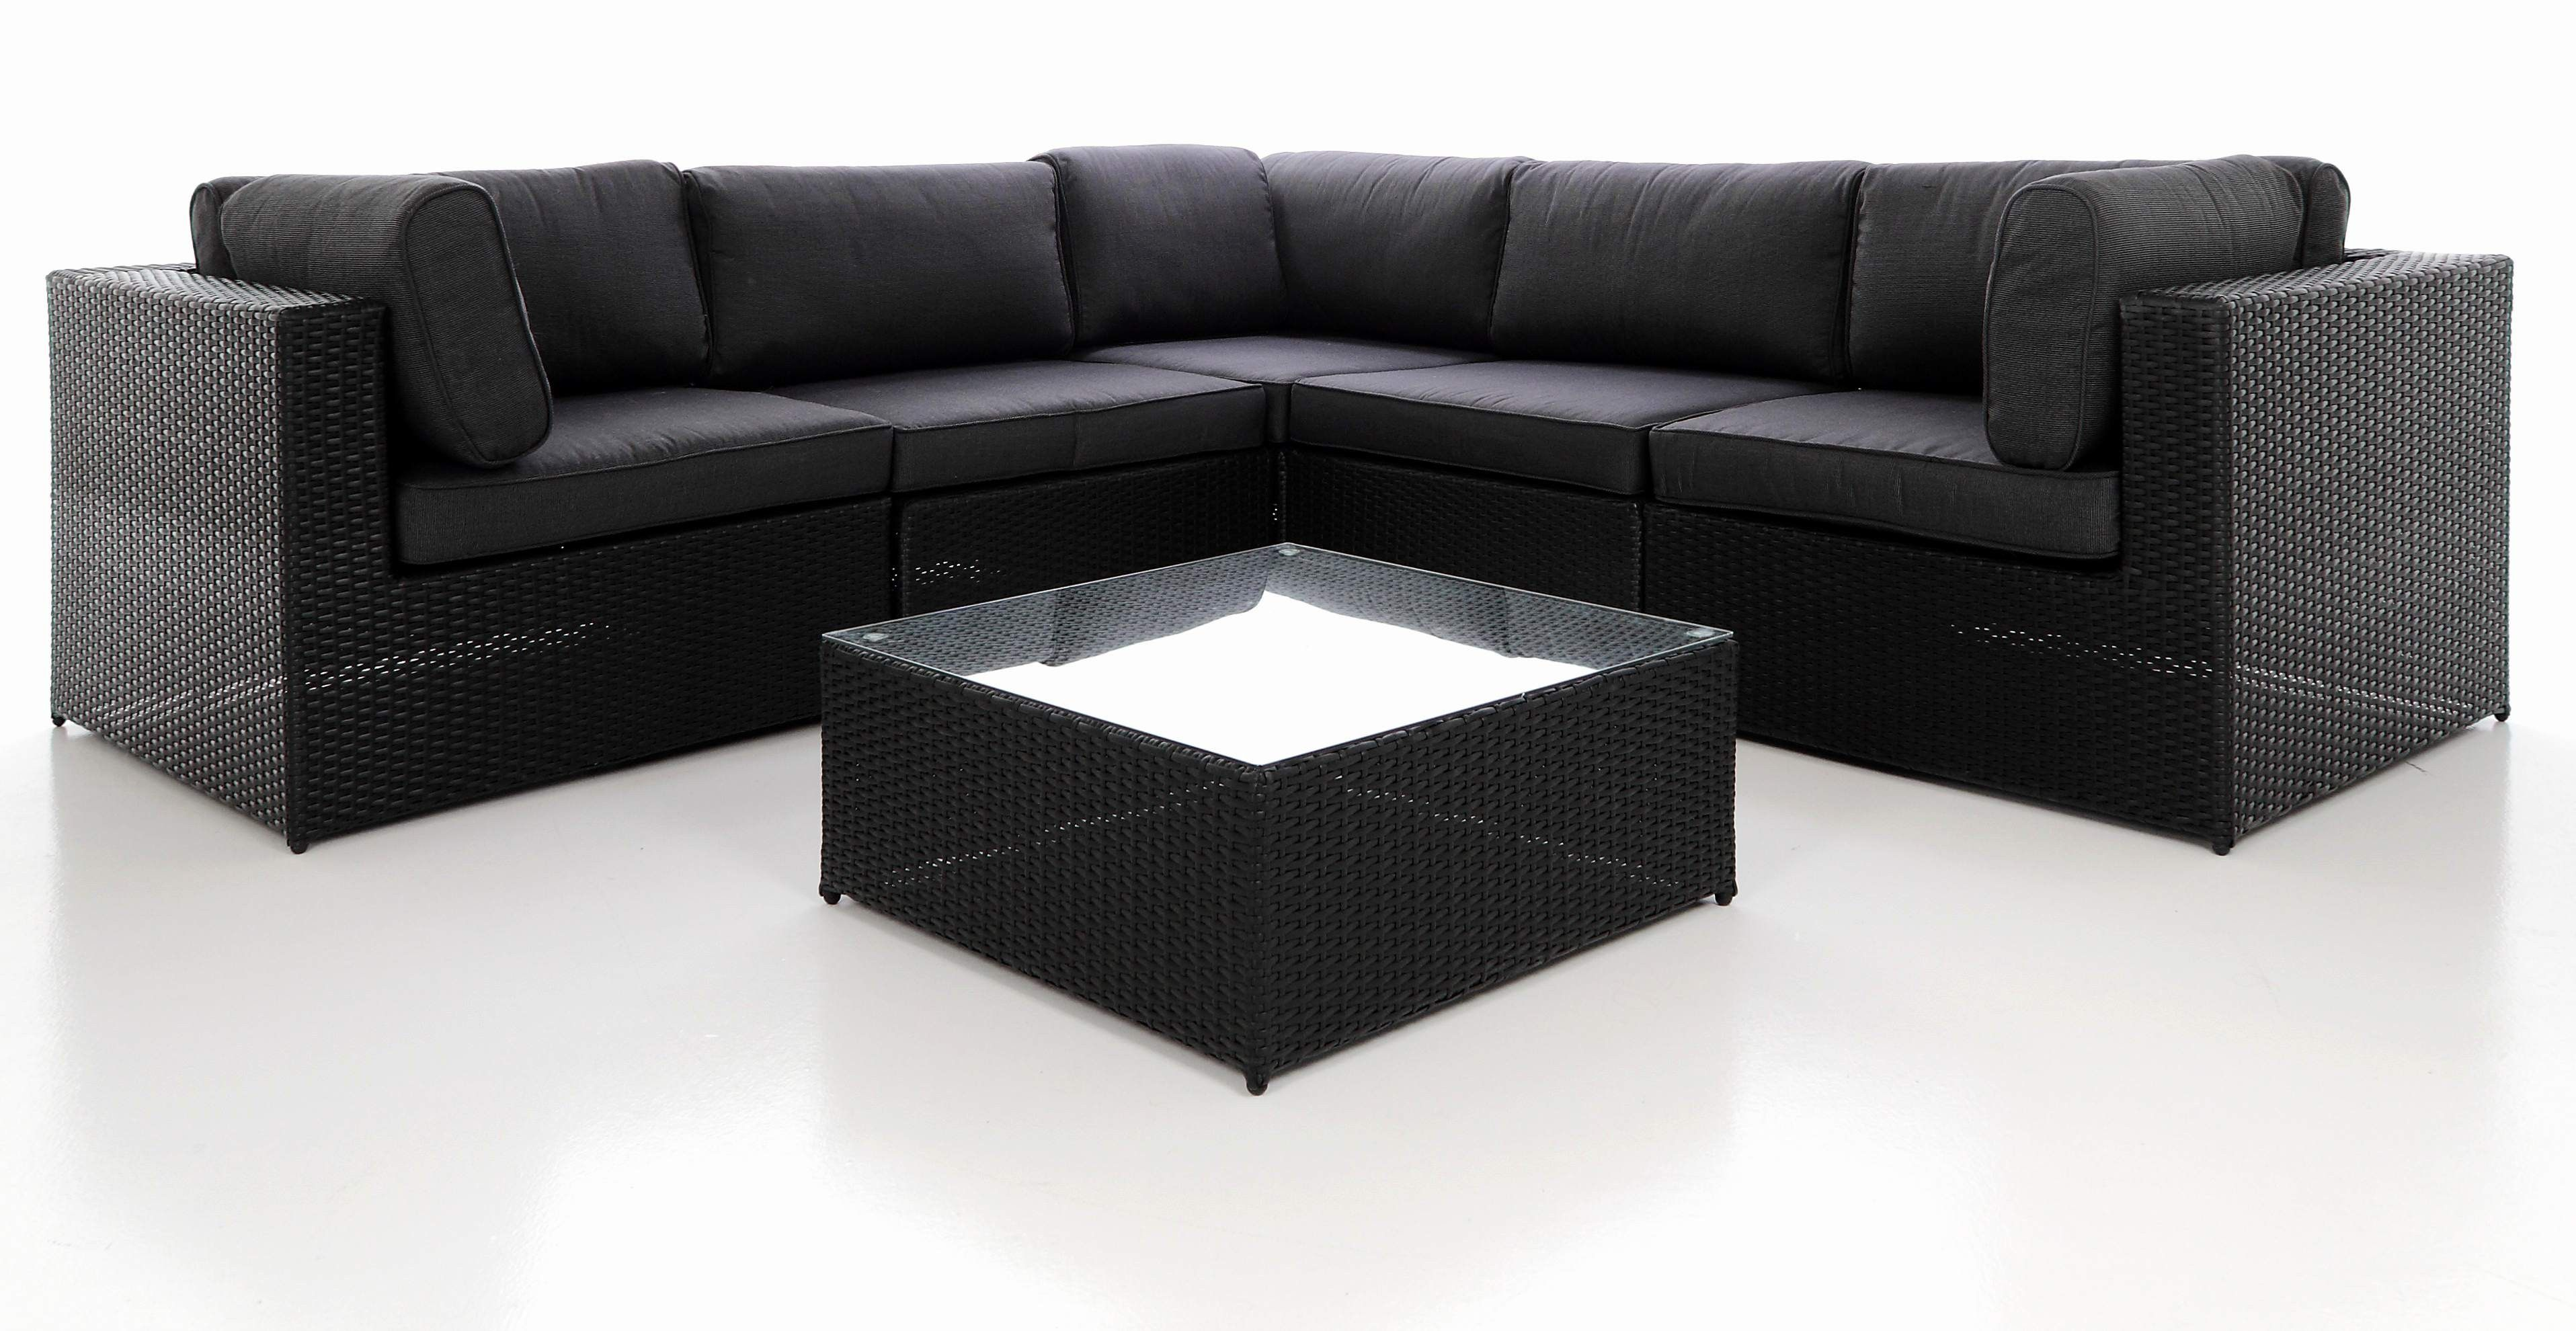 Fly Canape Lit Inspirant Canape Angle Caravane Awesome Canape Convertible Fly Banquette Lit